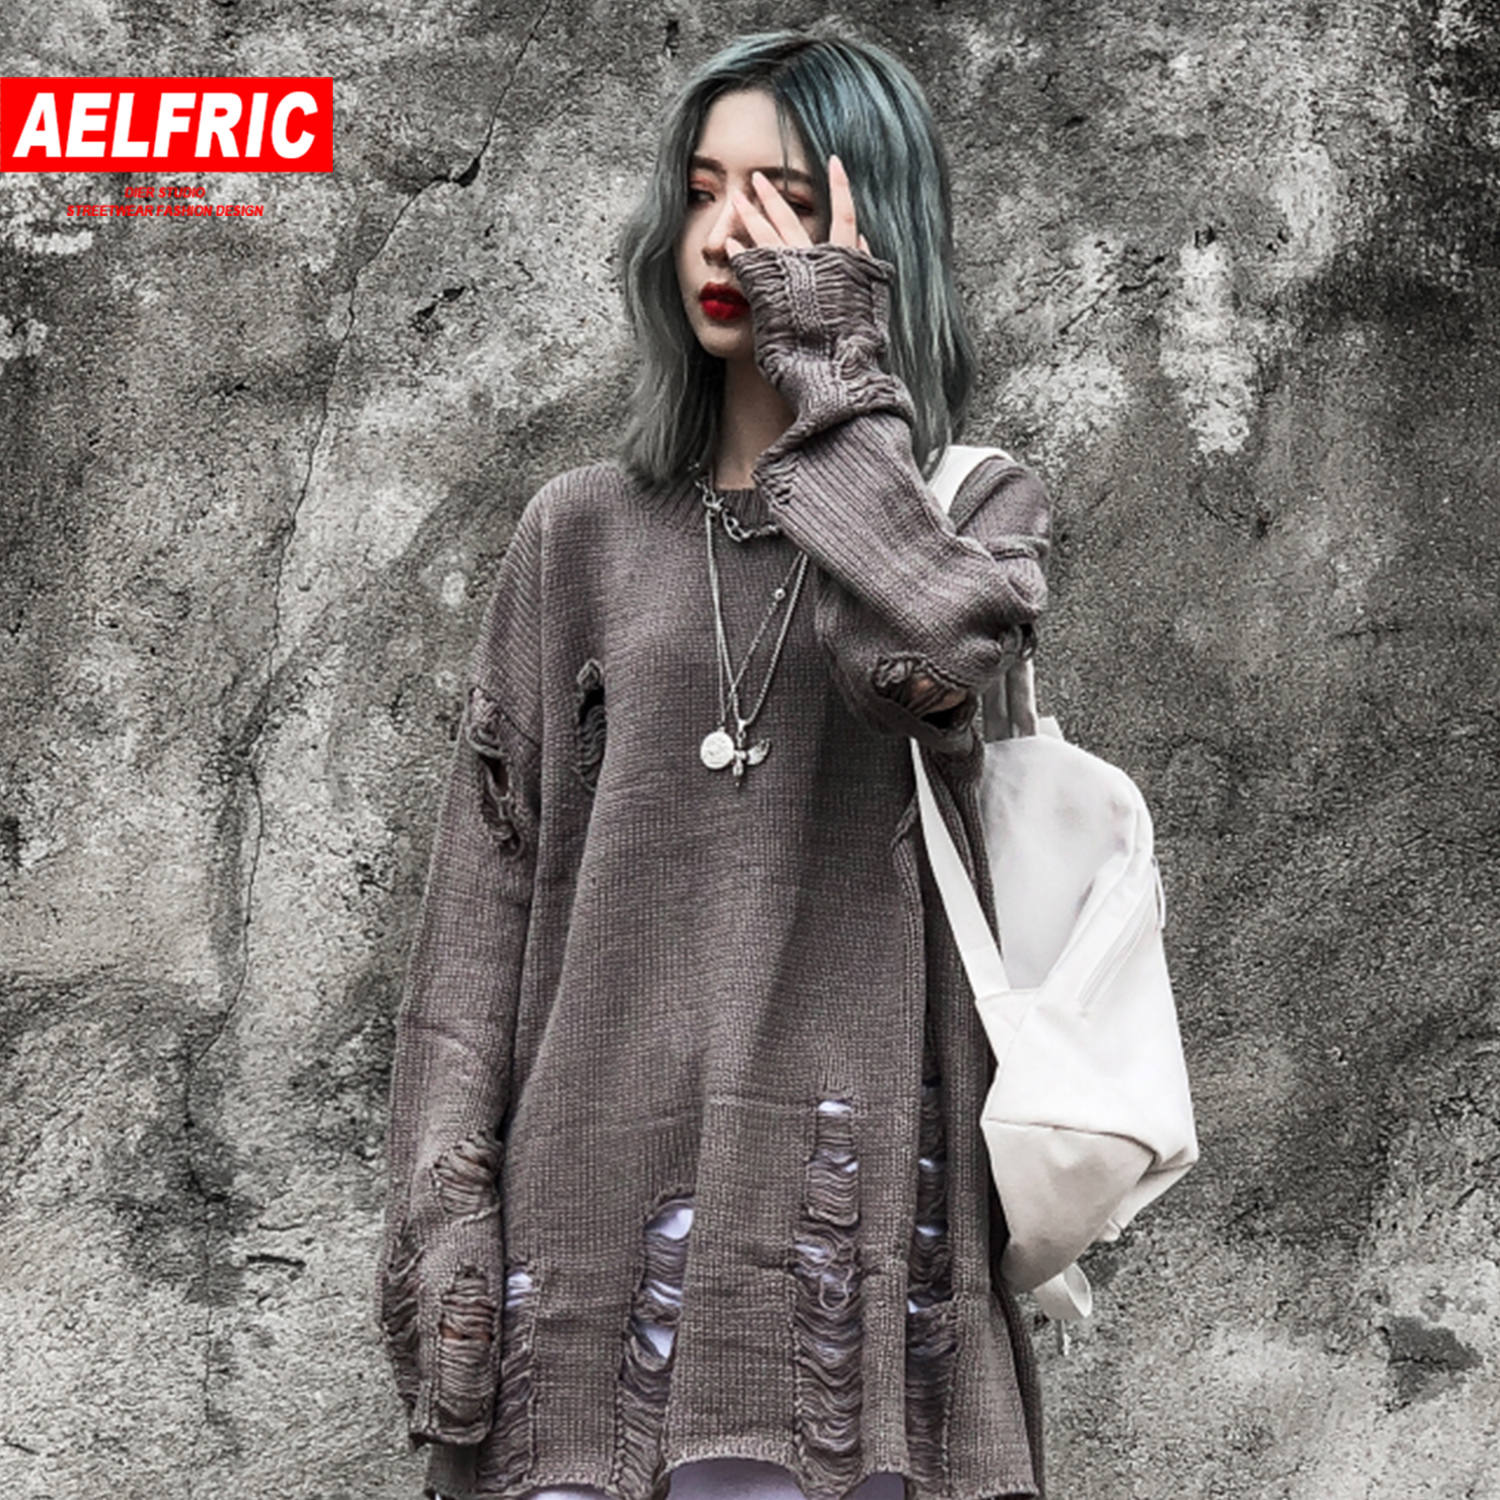 Aelfric Solid Ripped Knitted Womens Gothic Sweaters 2019 Harajuku Hip Hop Tops Fashion Streetwear Casua Lfemale Pullover Outwear